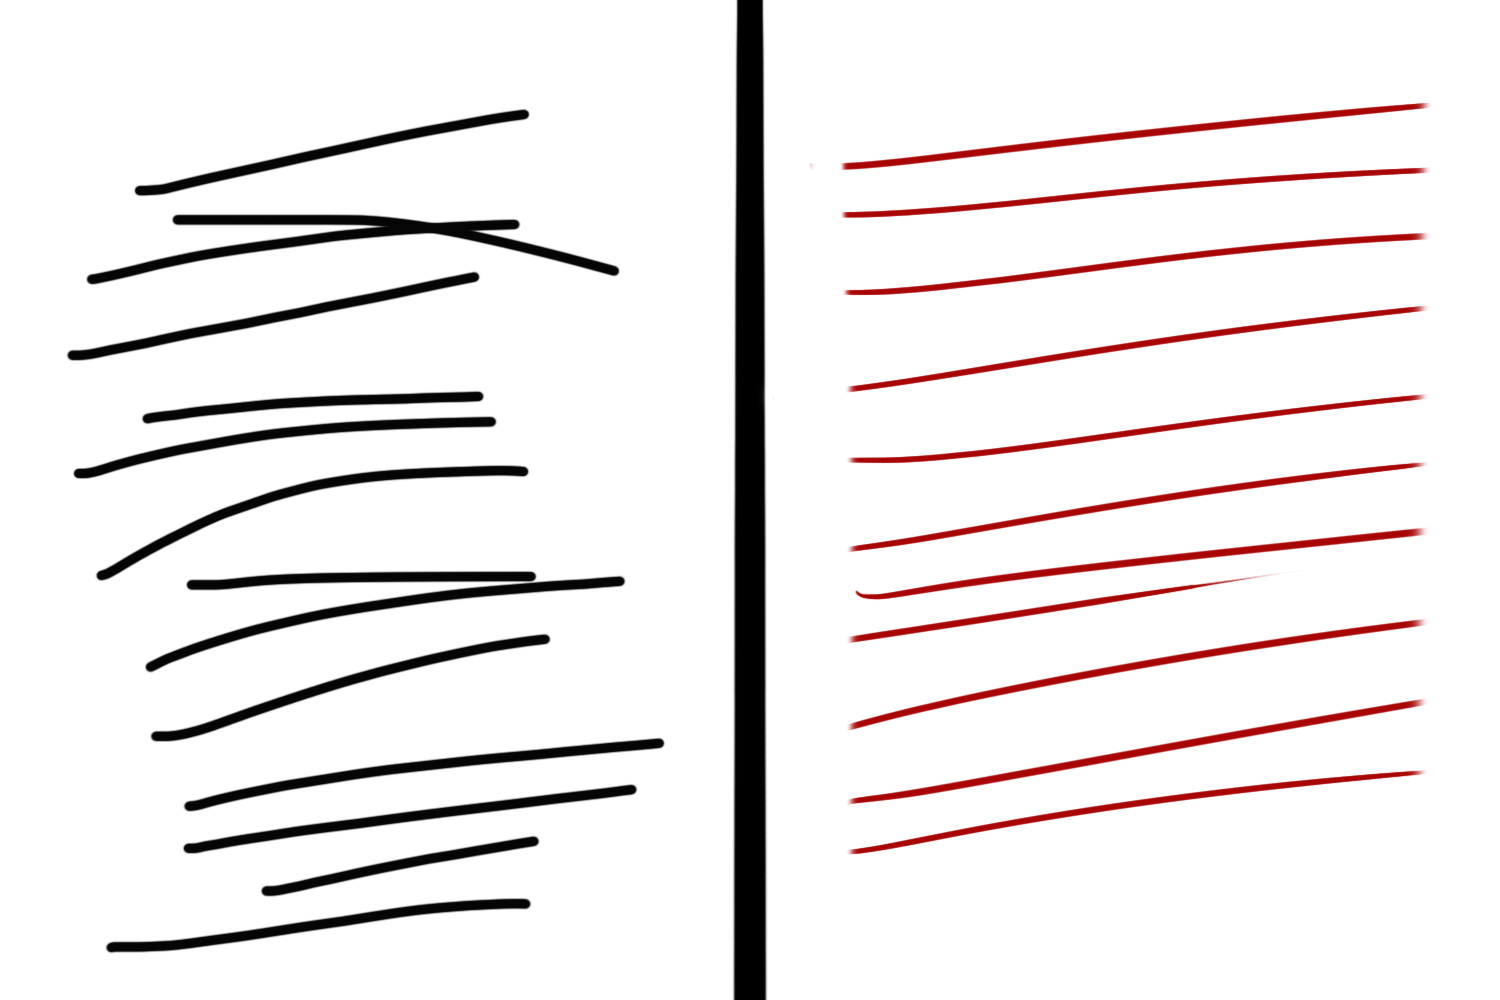 Using a graphics tablet for cleaner and more consistent lines.